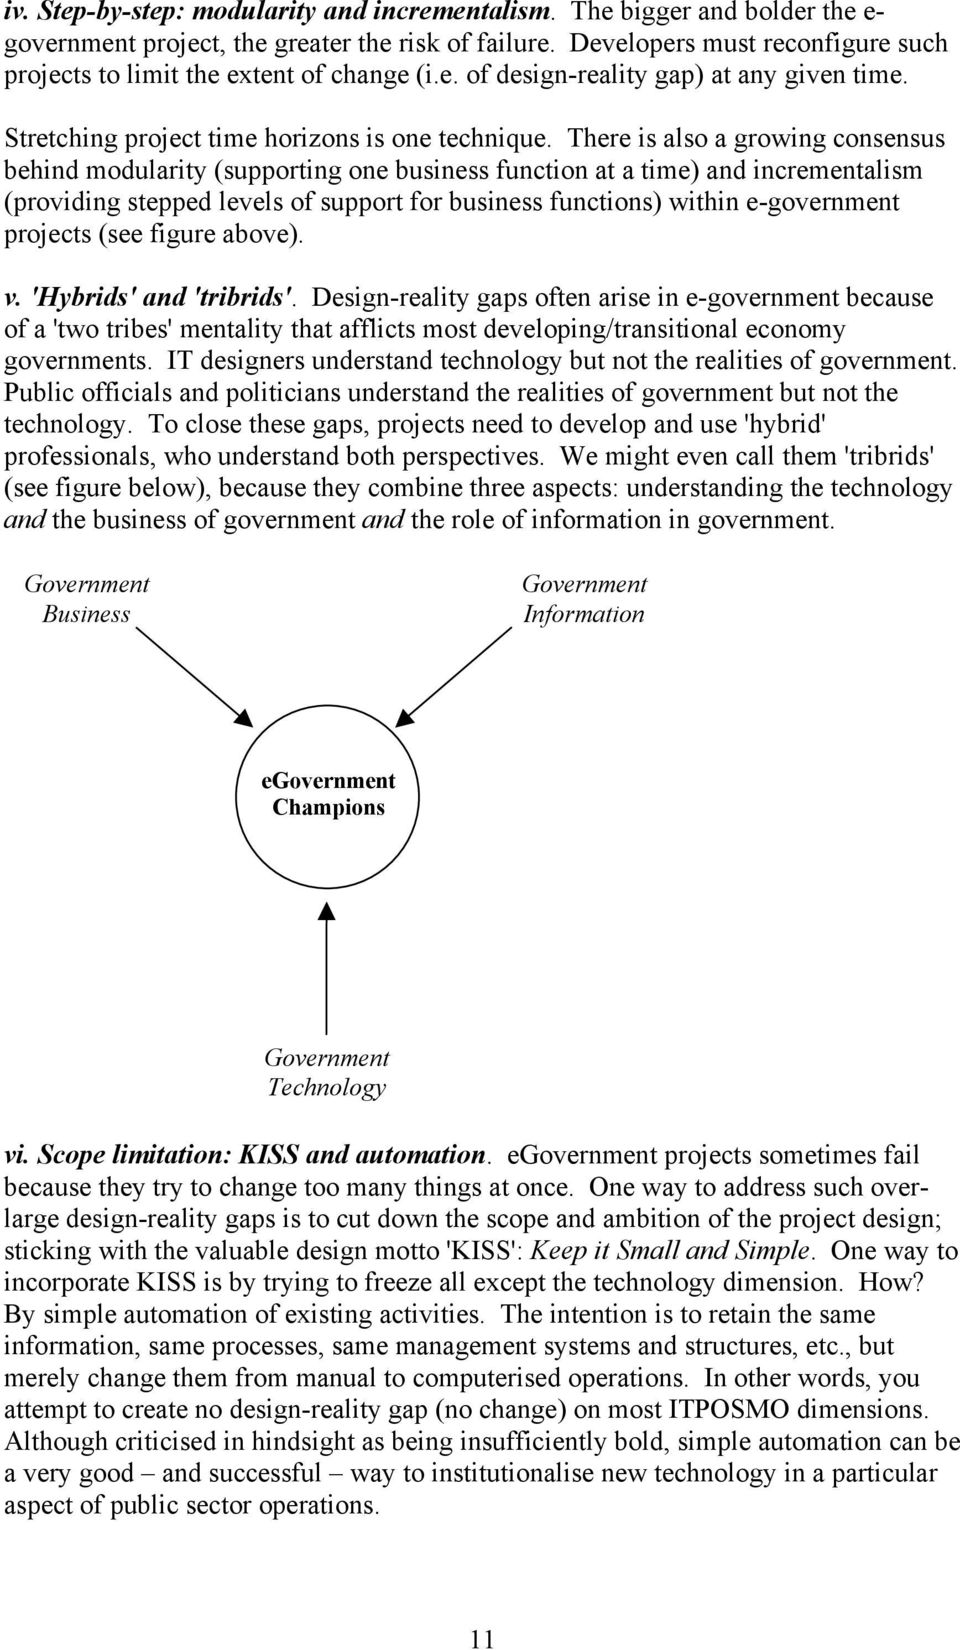 There is also a growing consensus behind modularity (supporting one business function at a time) and incrementalism (providing stepped levels of support for business functions) within e-government